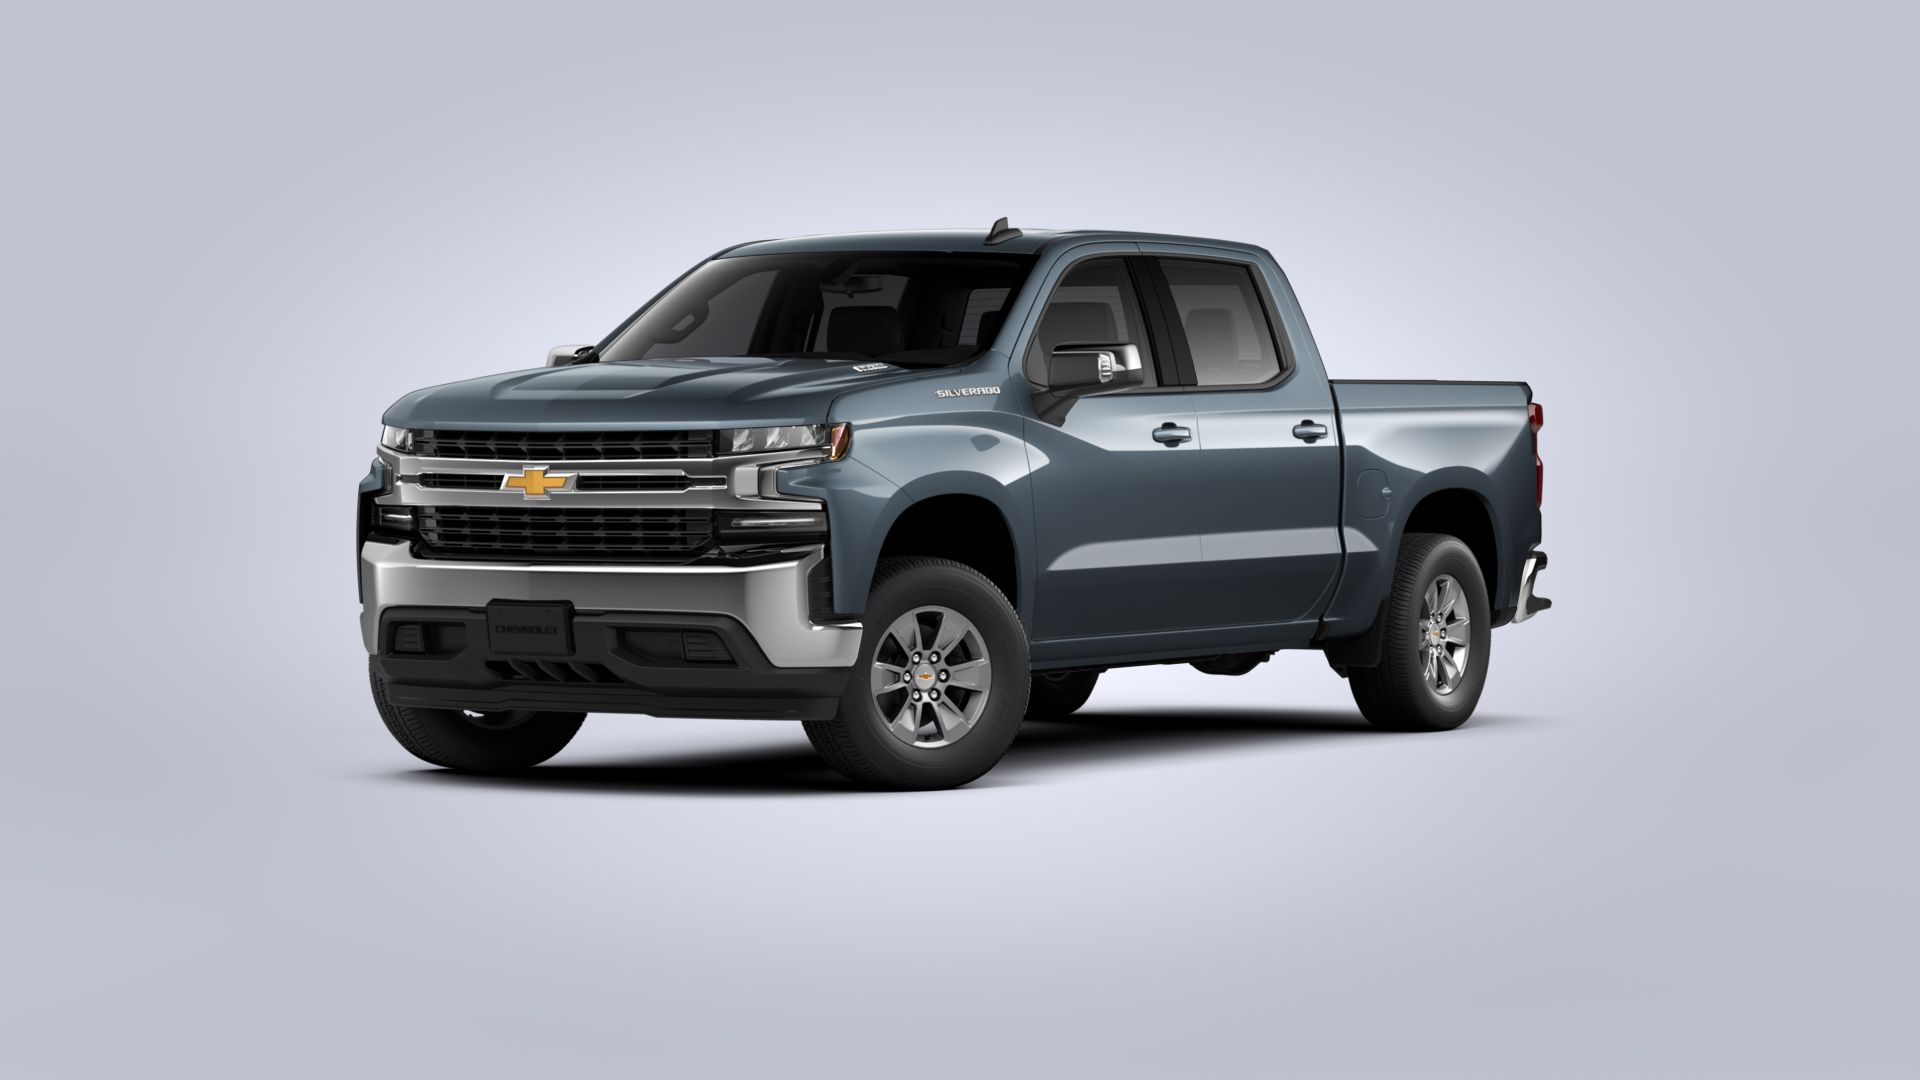 New 2020 Chevrolet Silverado 1500 LT REAR WHEEL DRIVE Crew Cab